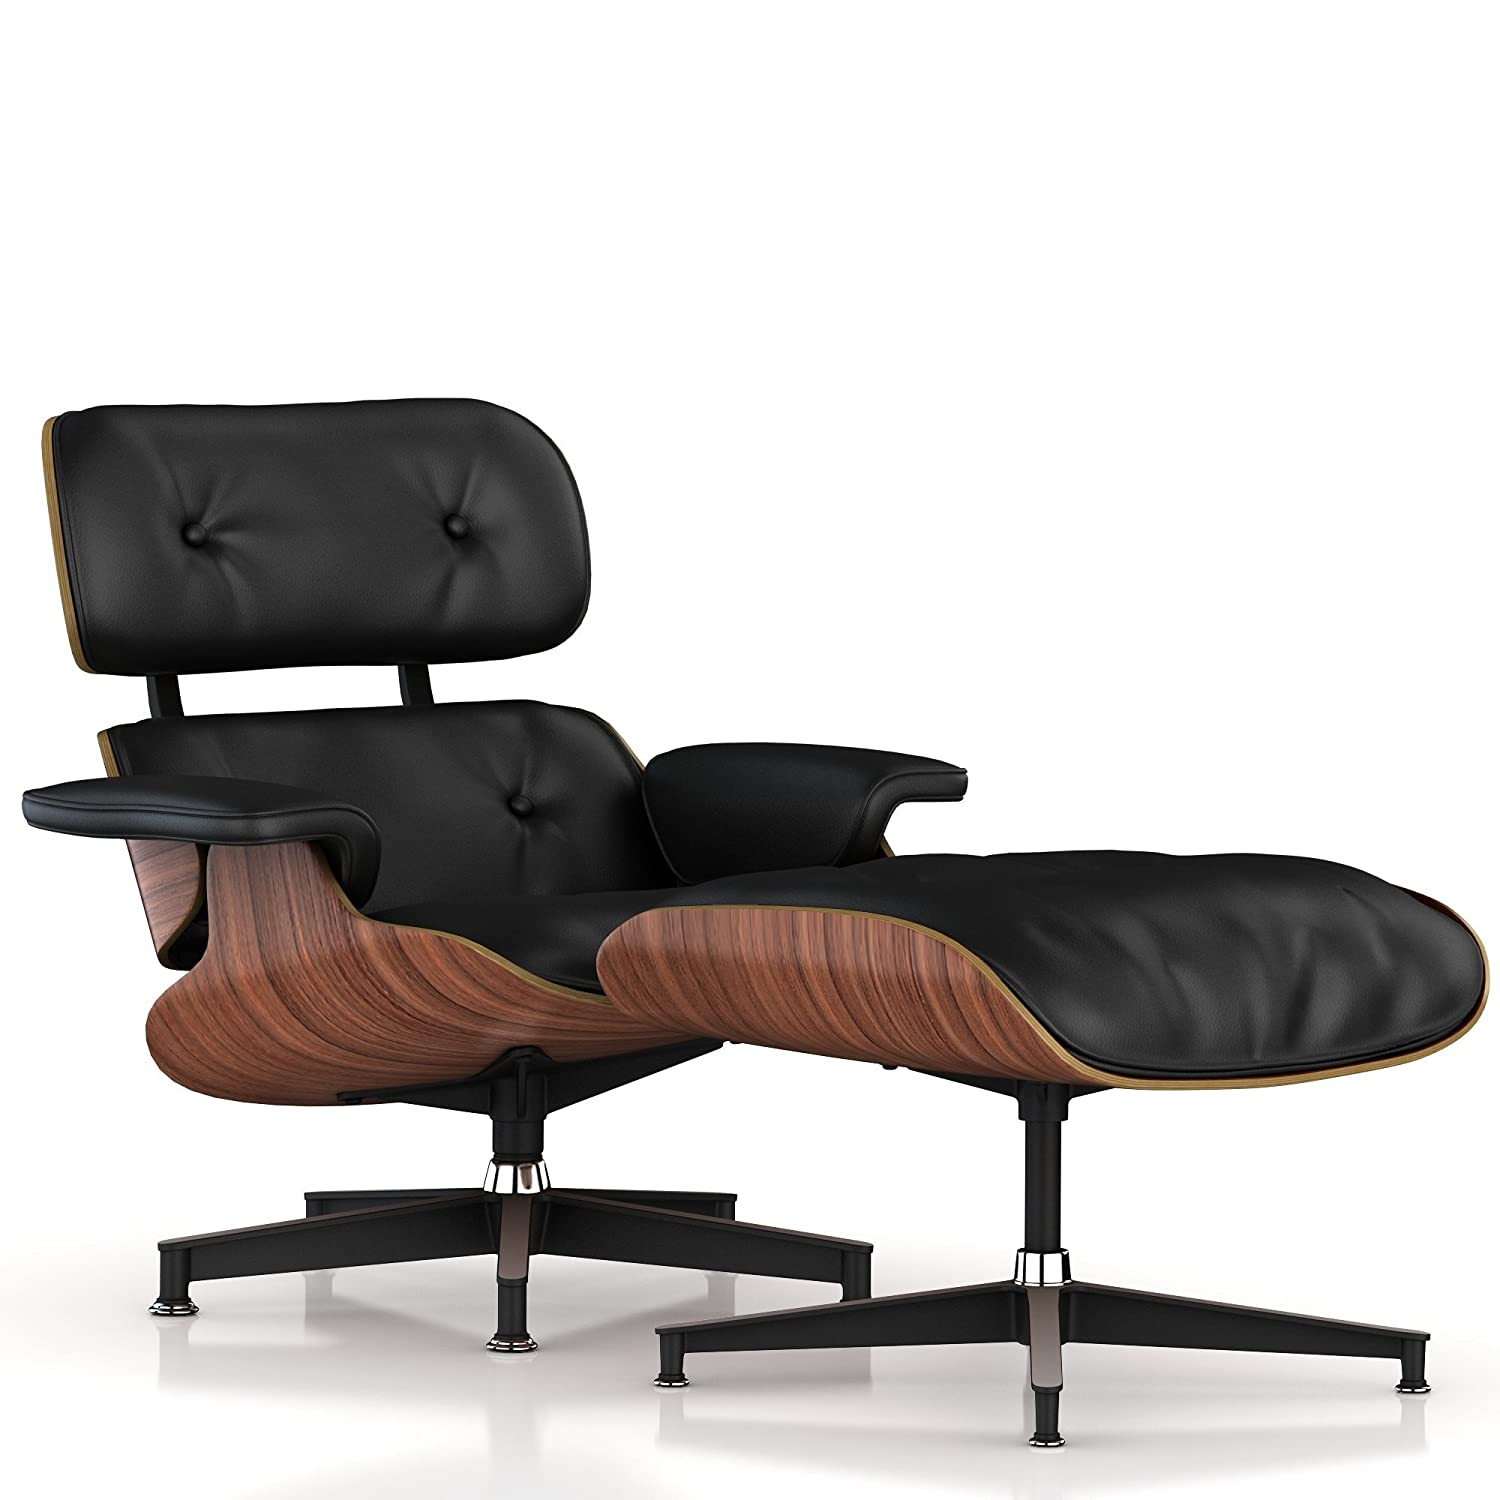 Herman Miller Eames Lounge Chair And Ottoman Classic Walnut Veneer Black Leather Made In Us Amazon In Home Kitchen